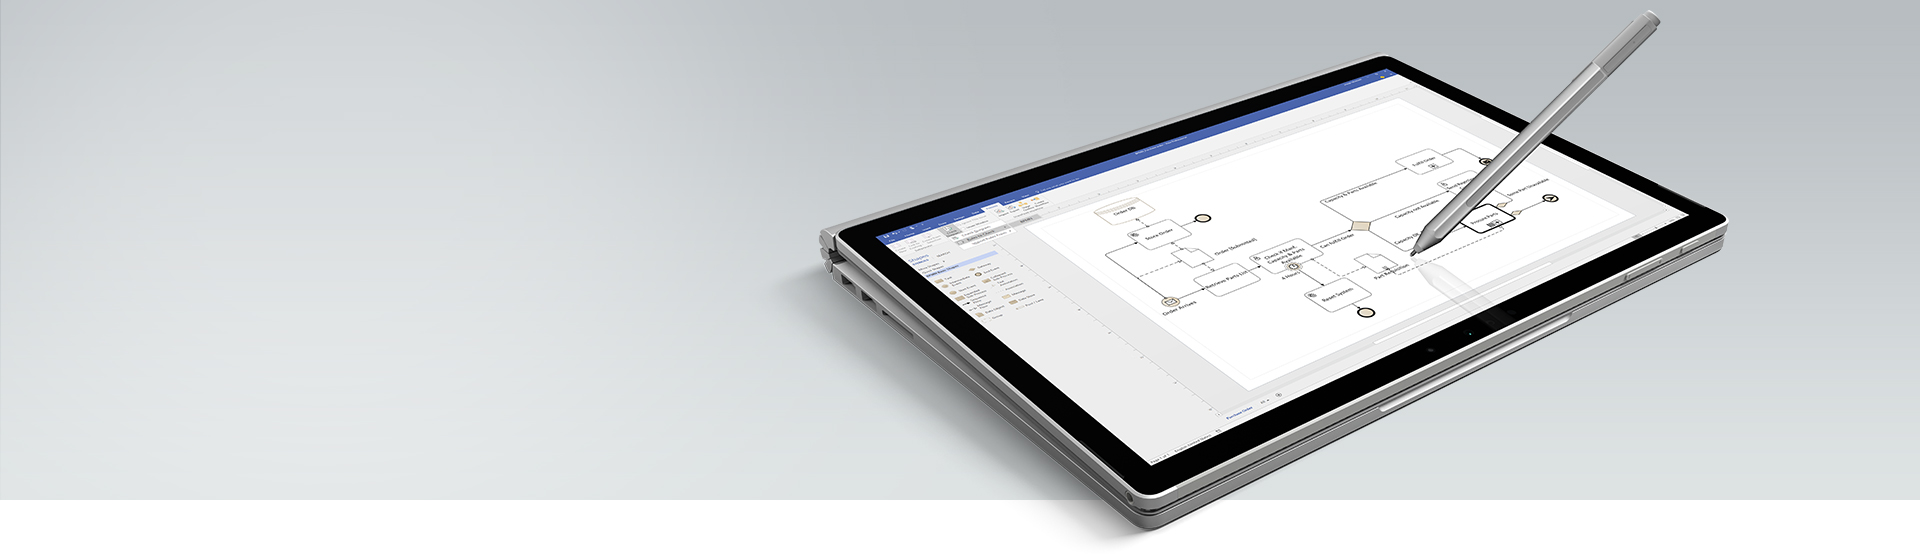 A Surface tablet displaying a process diagram in Visio